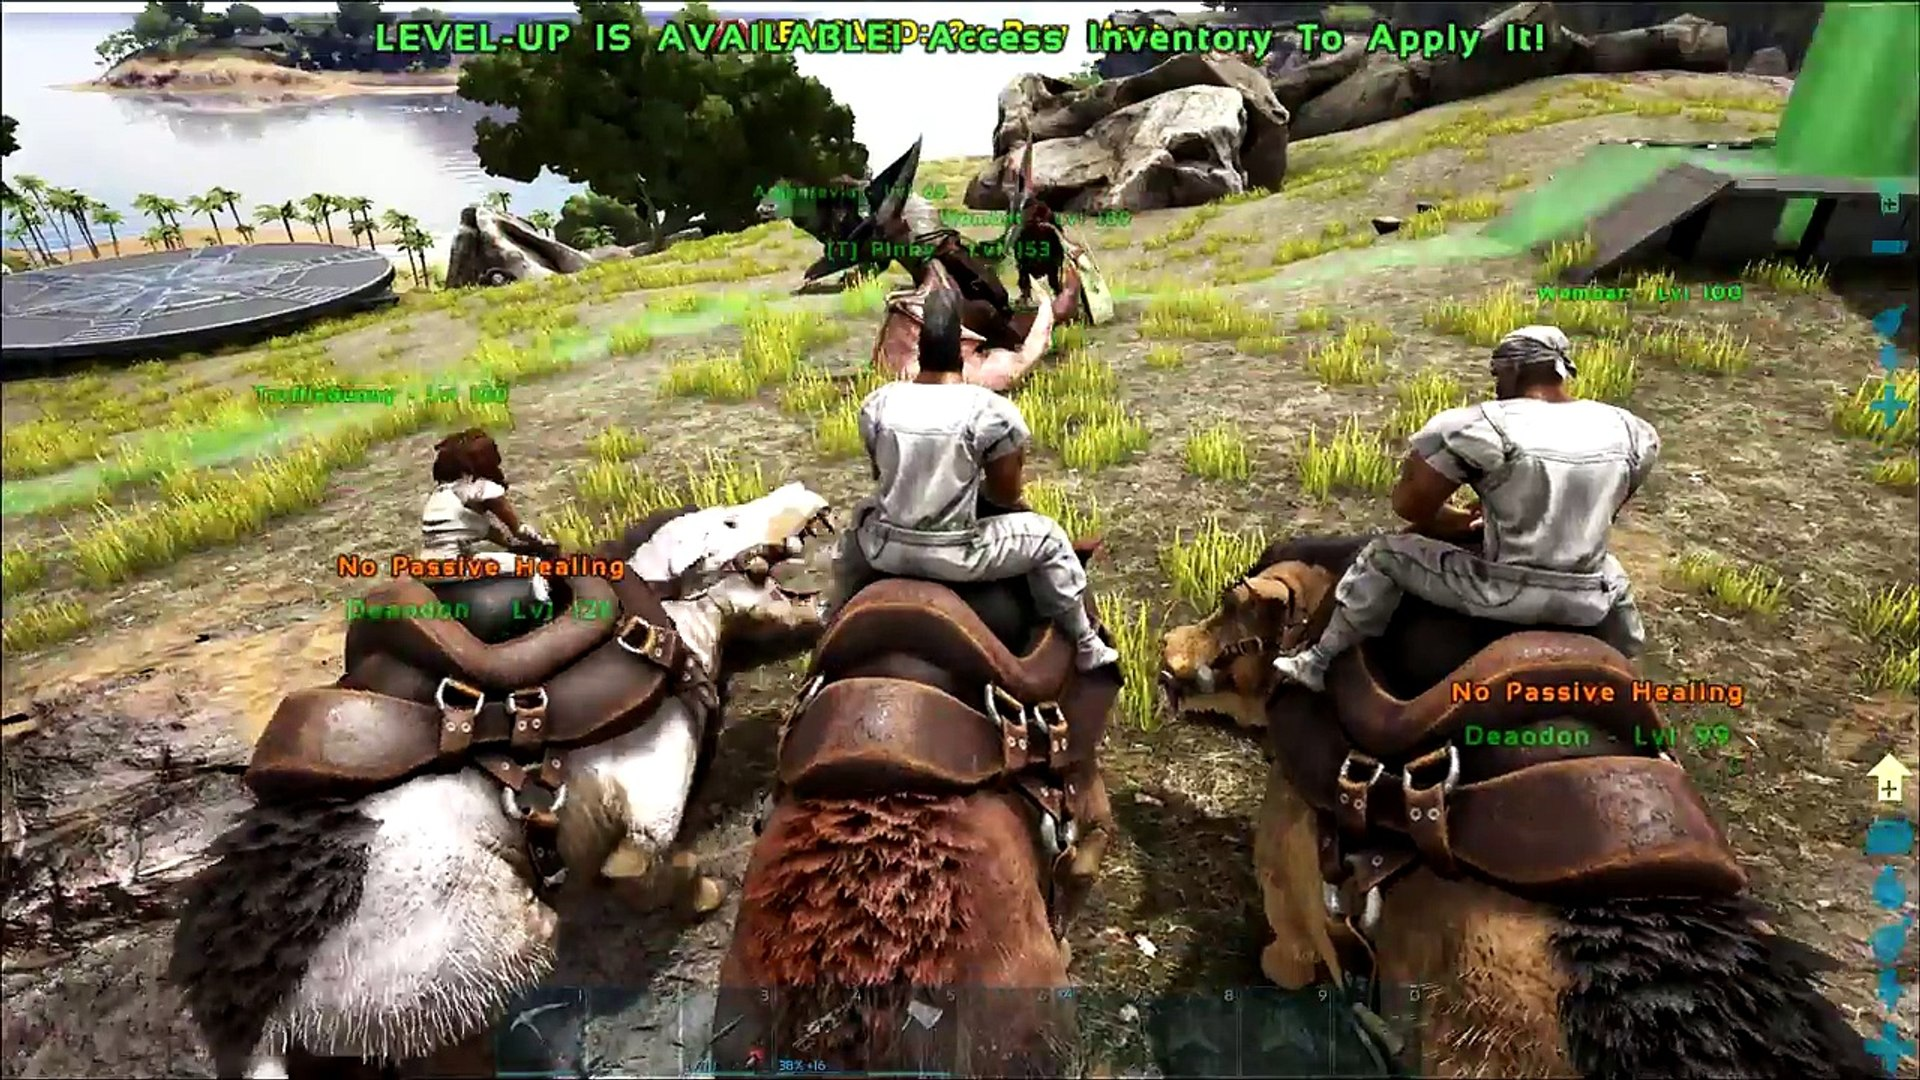 Ark Daeodon Taming Review Patch 257 Vs Alpha Carno Video Dailymotion Can the passiv healing help that babies dont die when i go to sleep? ark daeodon taming review patch 257